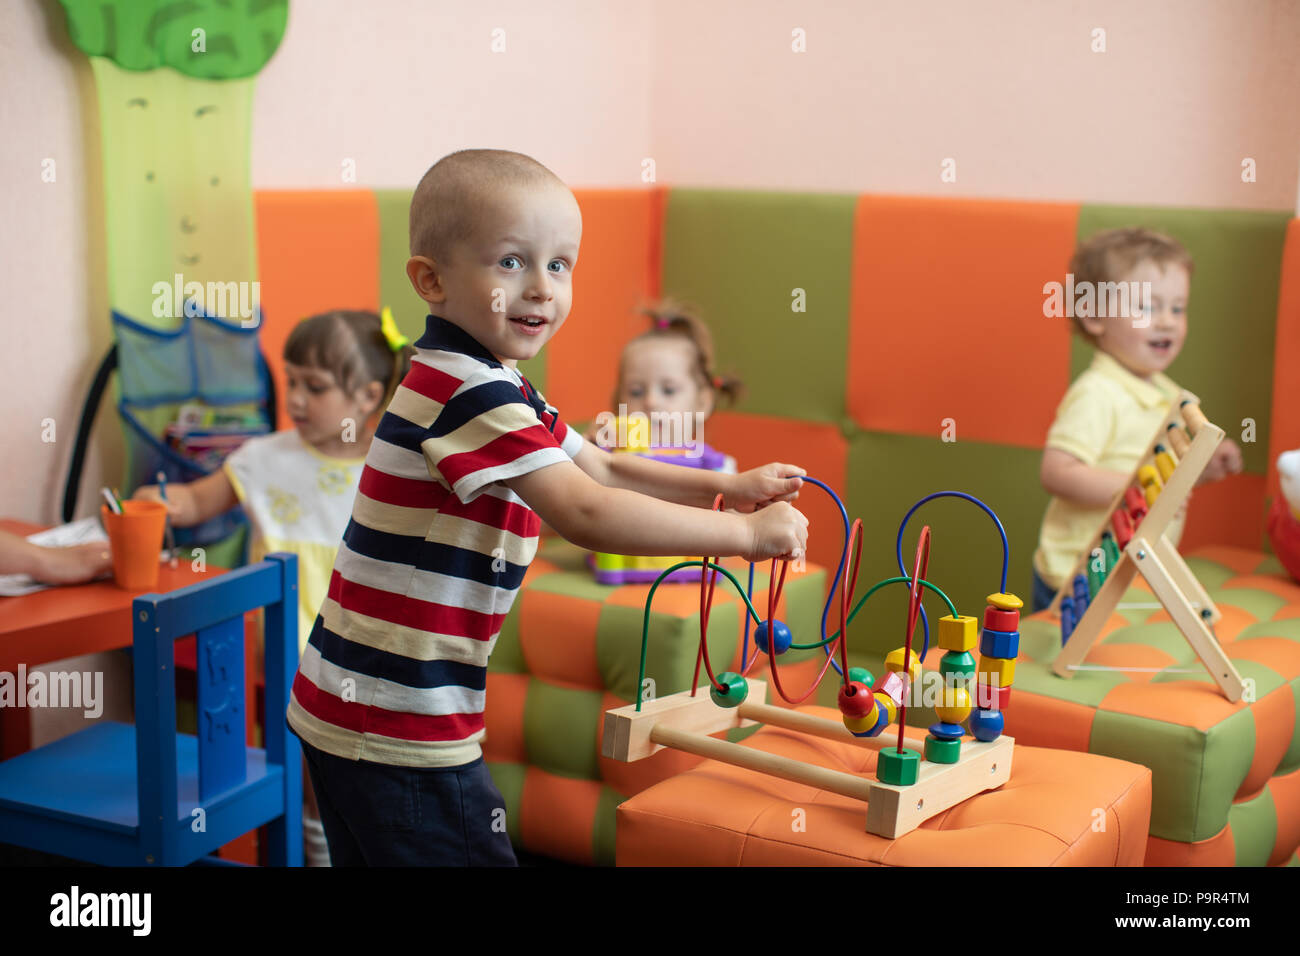 Group of children playing in kindergarten or daycare centre Stock Photo